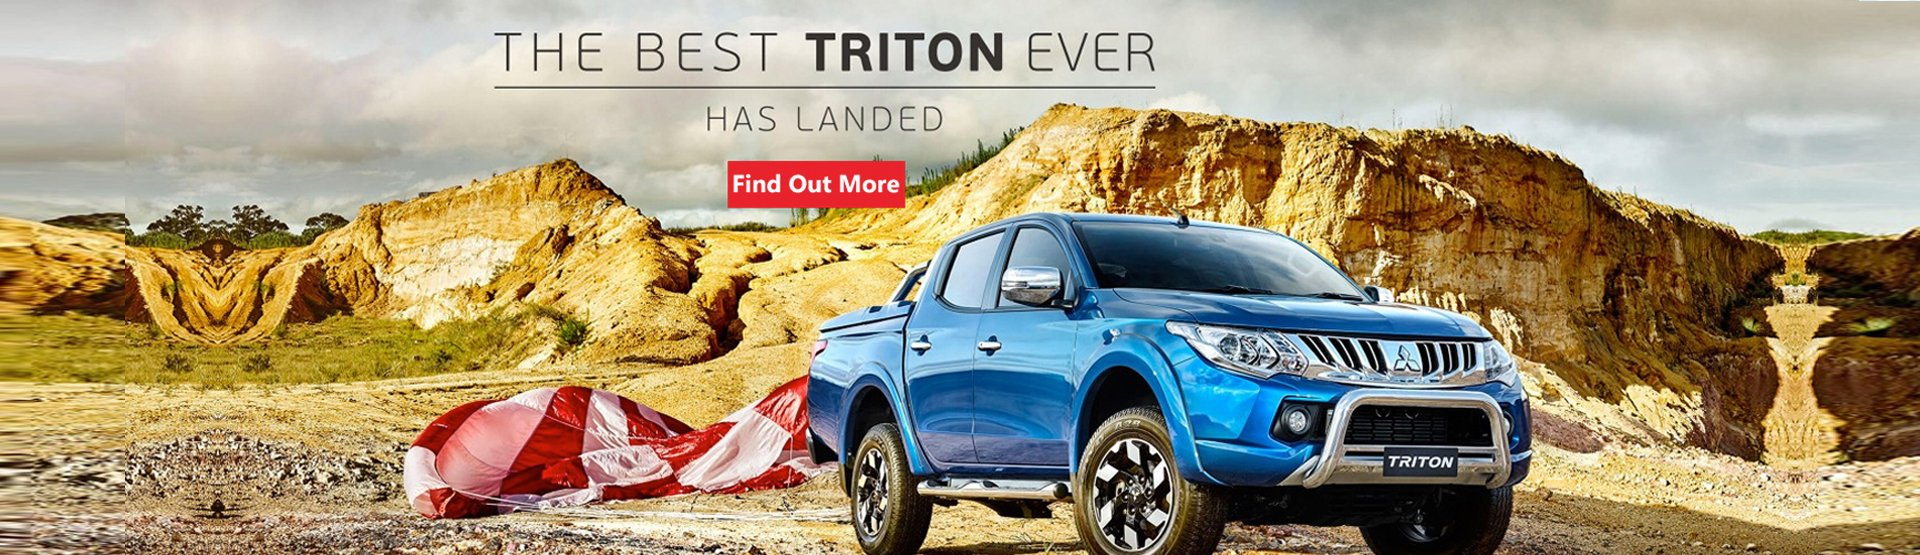 The best Triton ever has landed at Nundah Mitsubishi Brisbane. Find out more today.